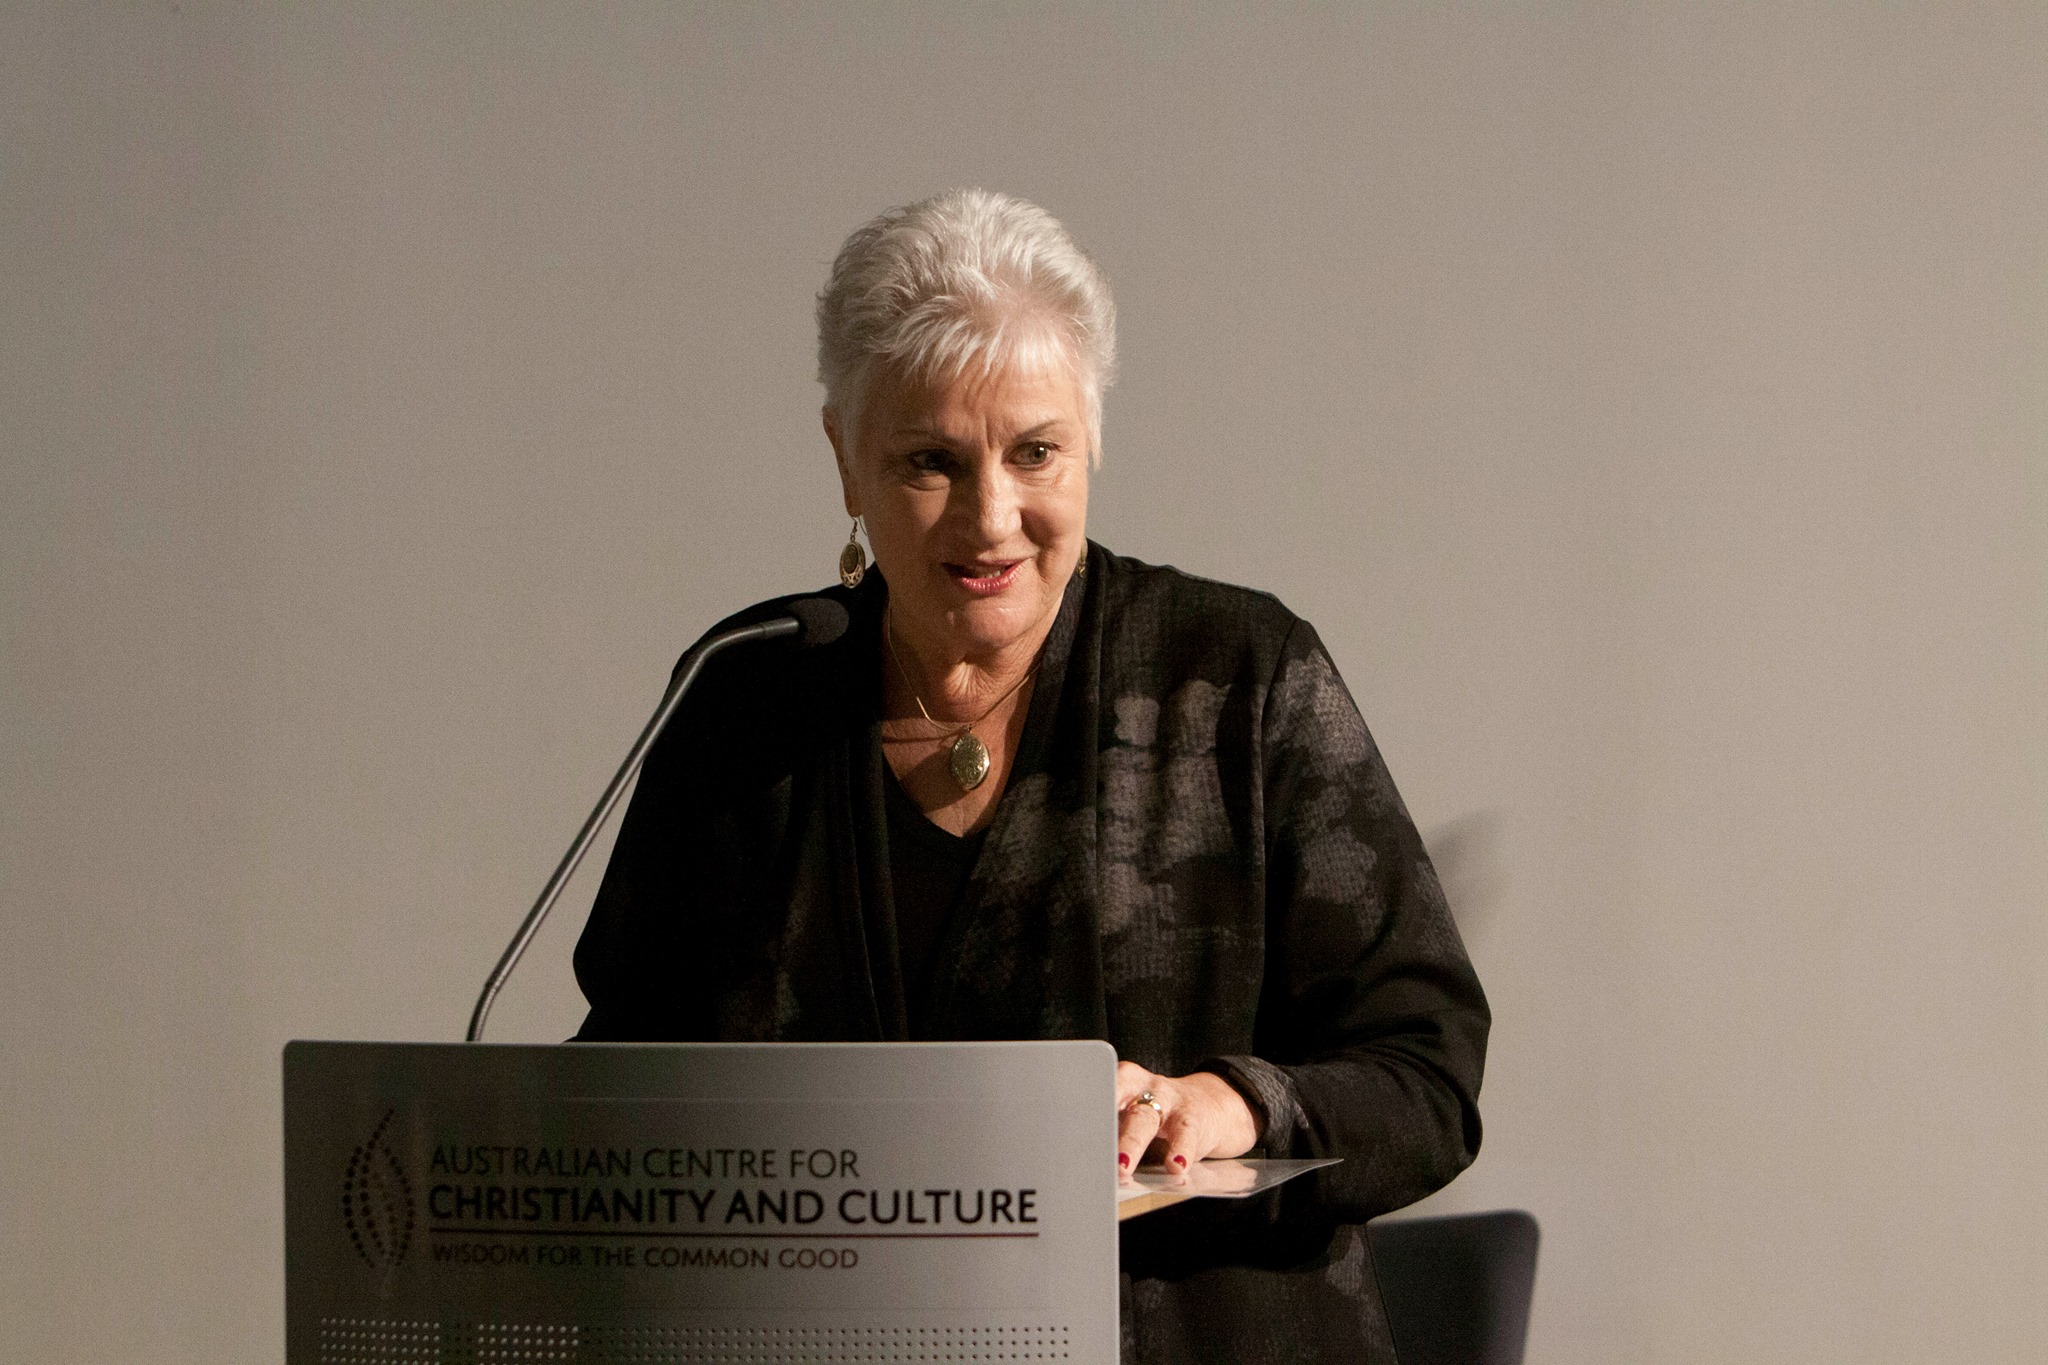 Her Excellency Dame Annette King